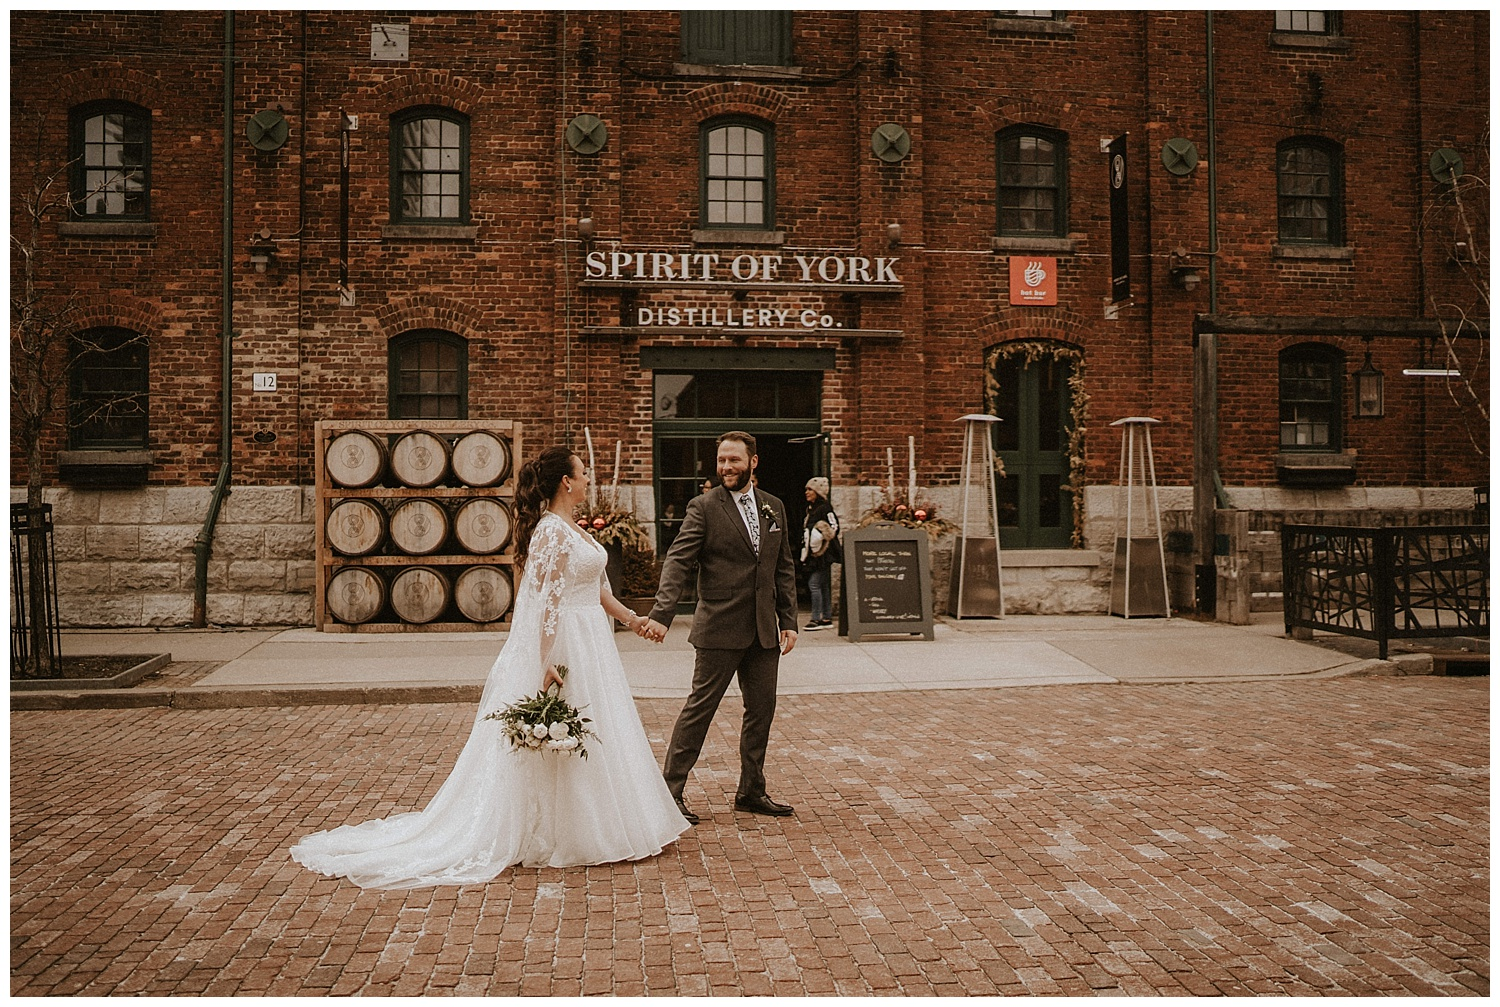 Katie Marie Photography | Archeo Wedding Arta Gallery Wedding | Distillery District Wedding | Toronto Wedding Photographer | Hamilton Toronto Ontario Wedding Photographer |_0050.jpg